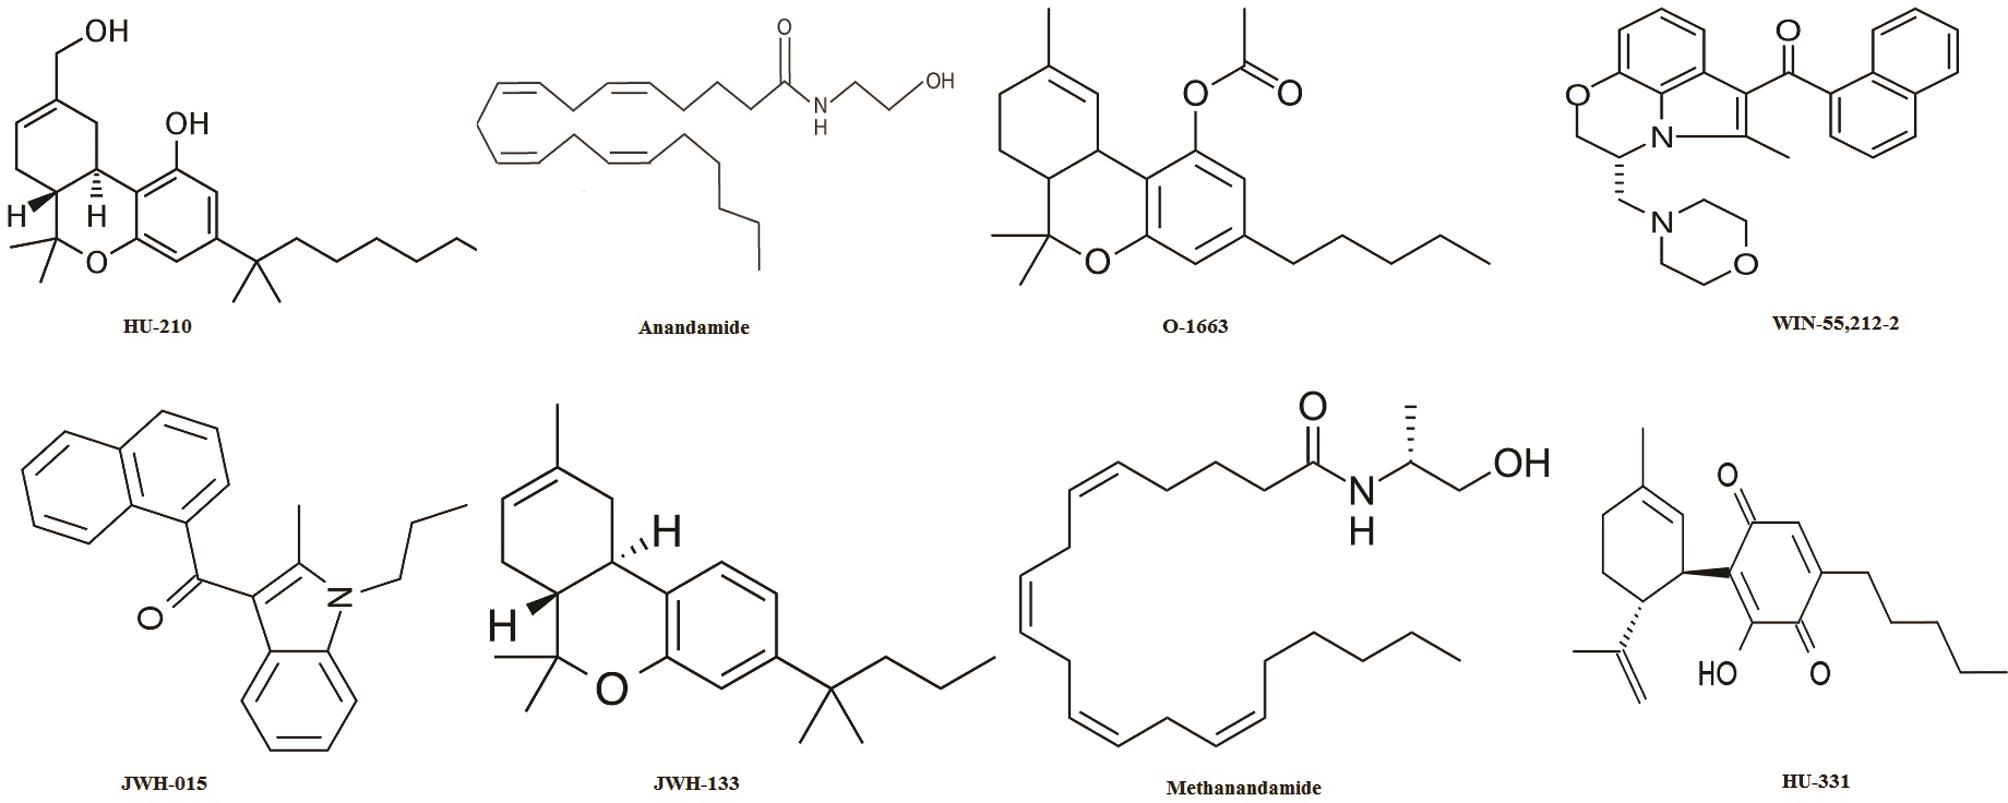 Structures of various cannabinoid analogues.